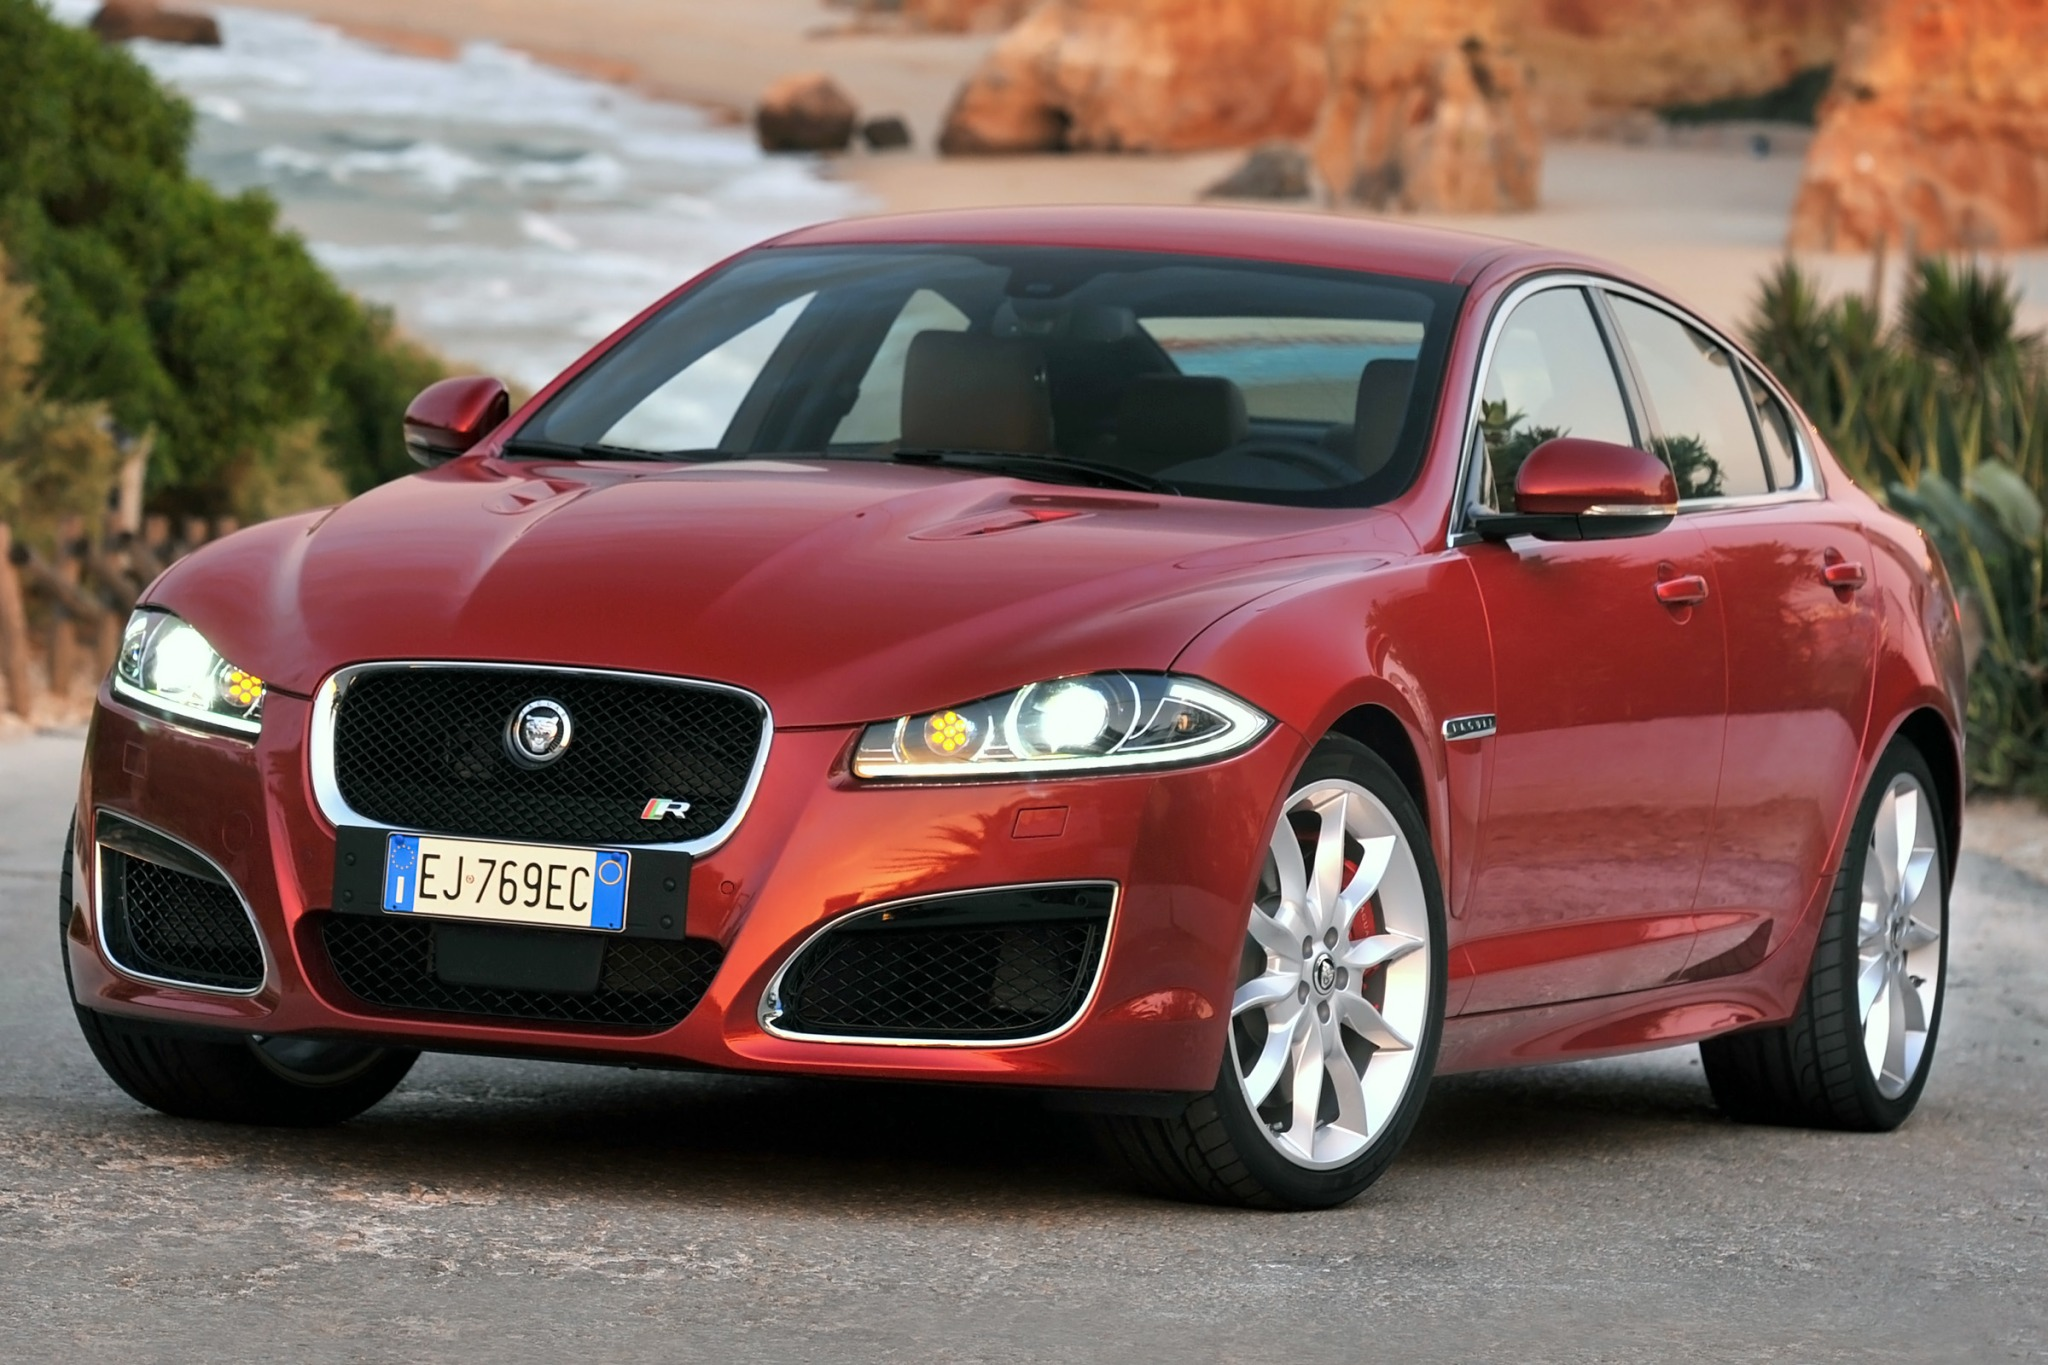 2014 Jaguar XF Sedan Inte interior #2